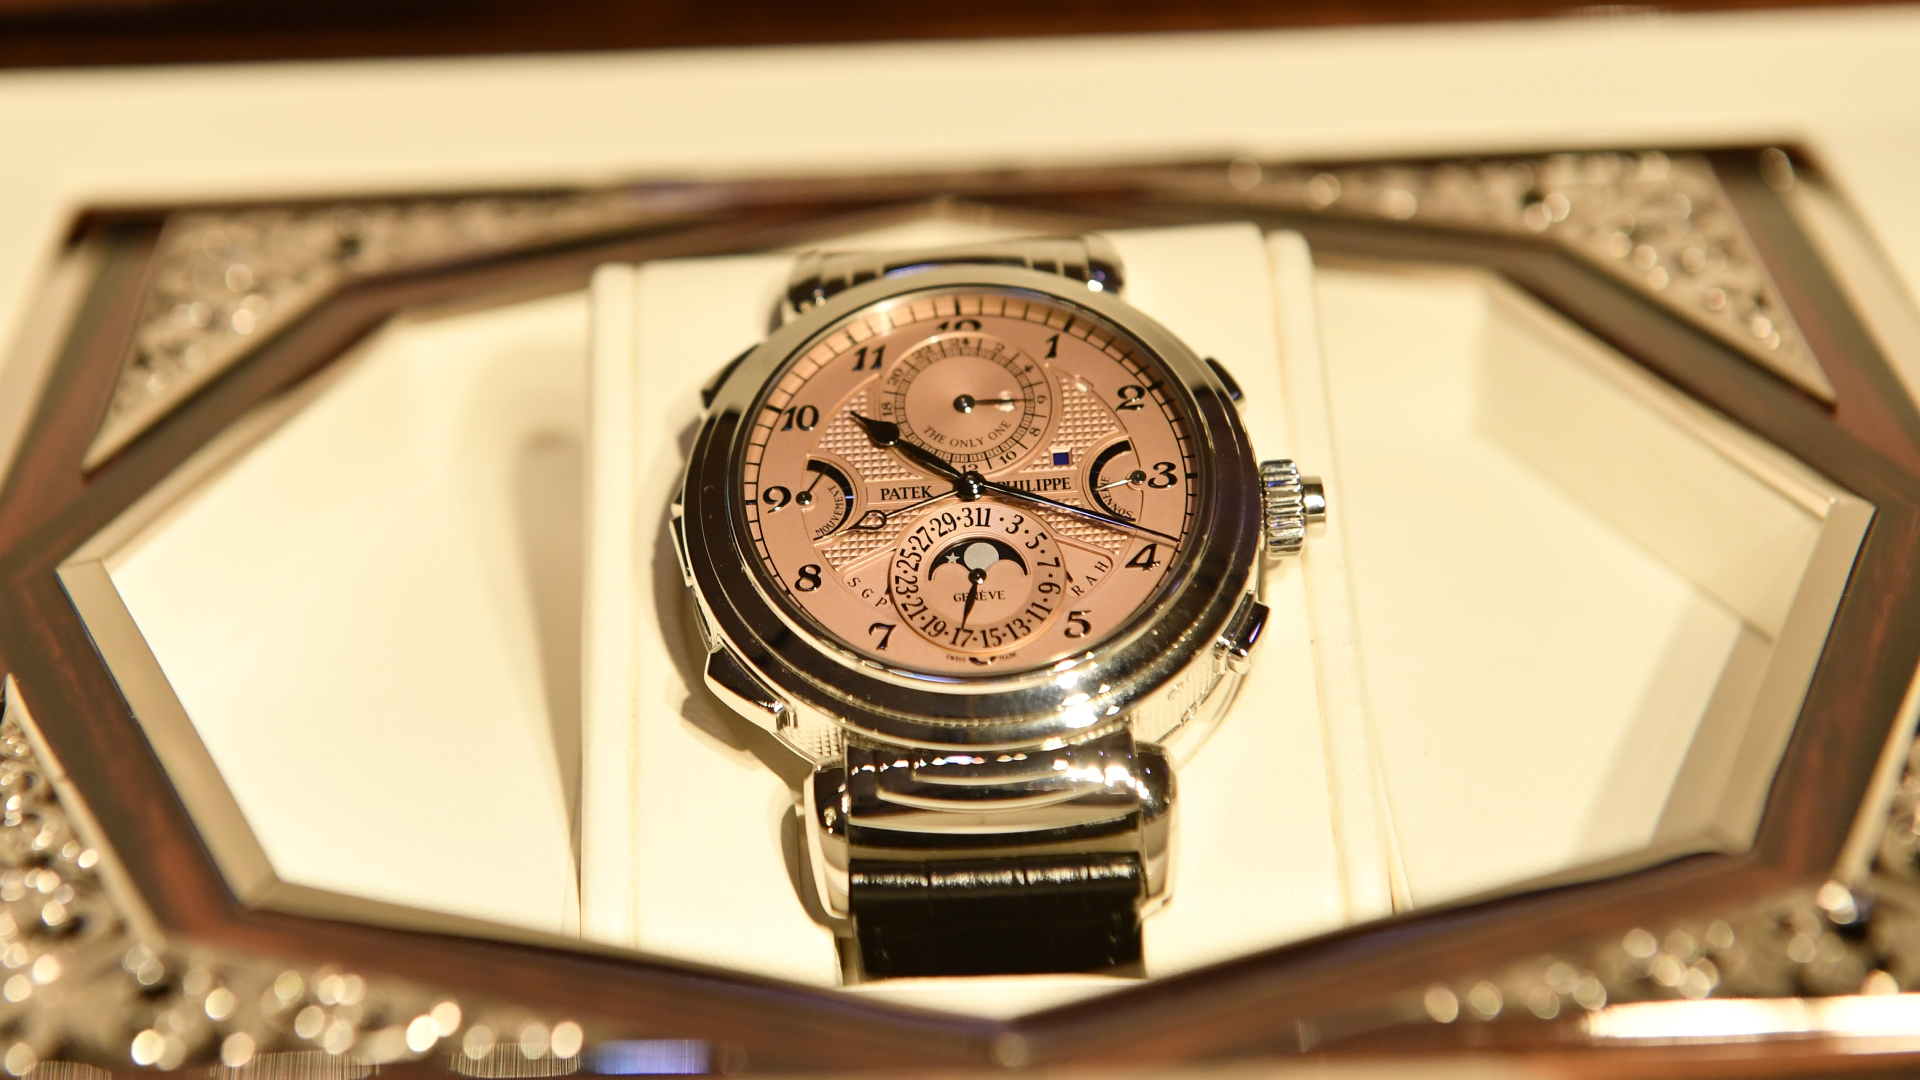 Picture of the Patek Philippe Watch sold at the Only Watch Auction in November 2019